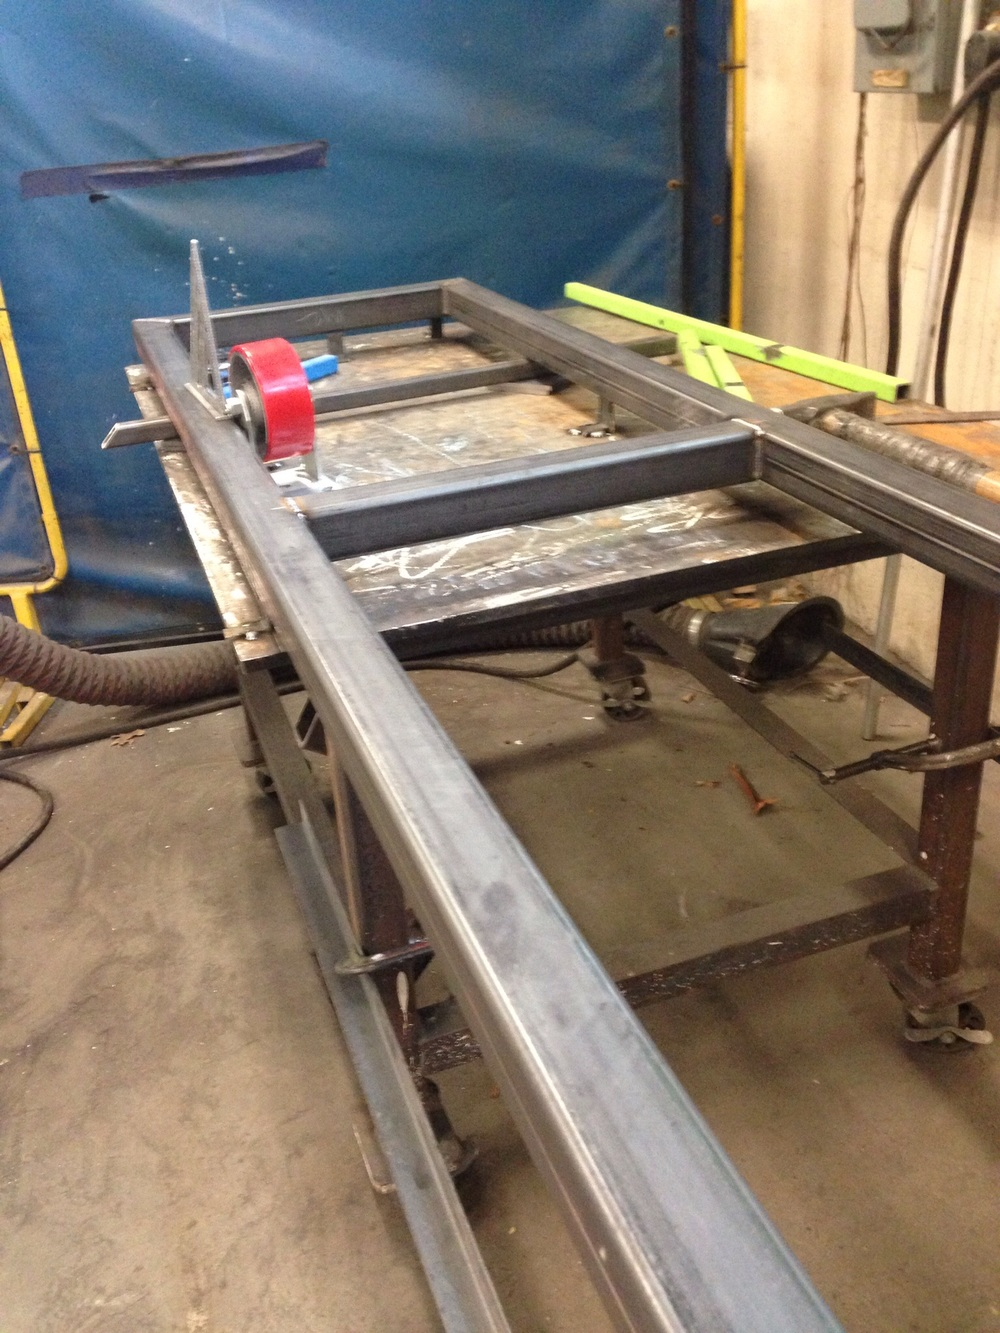 The frames for the moveable walls. I built a jig using two tables by clamping them together. Metal tabs were temporarily welded to hold the framework into place while they were welded.